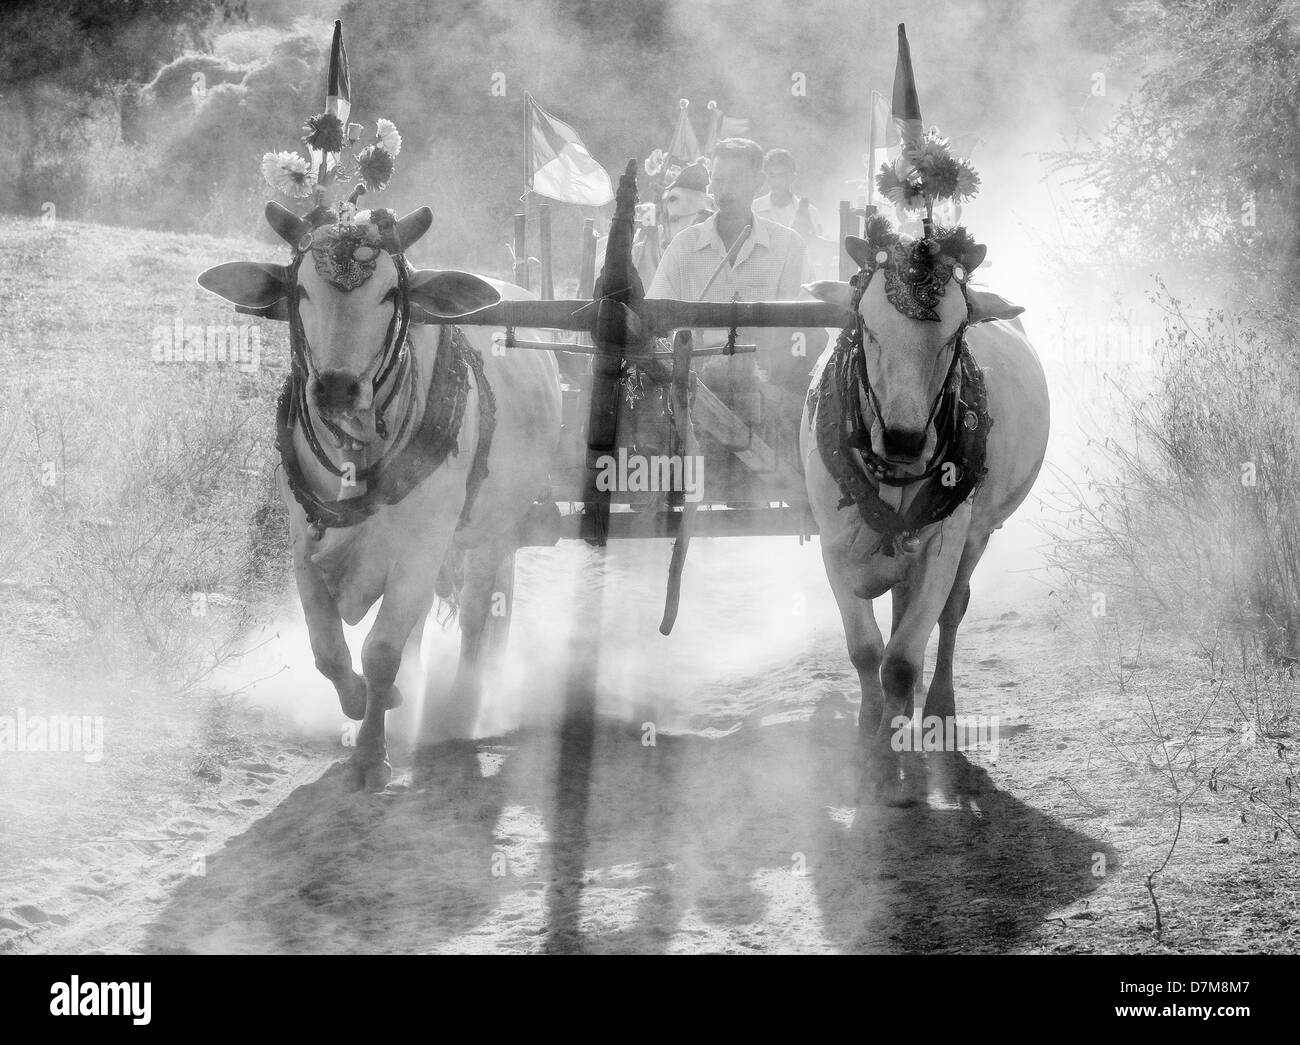 Oxen cart in the dust, Bagan, Burma (Myanmar) - Stock Image